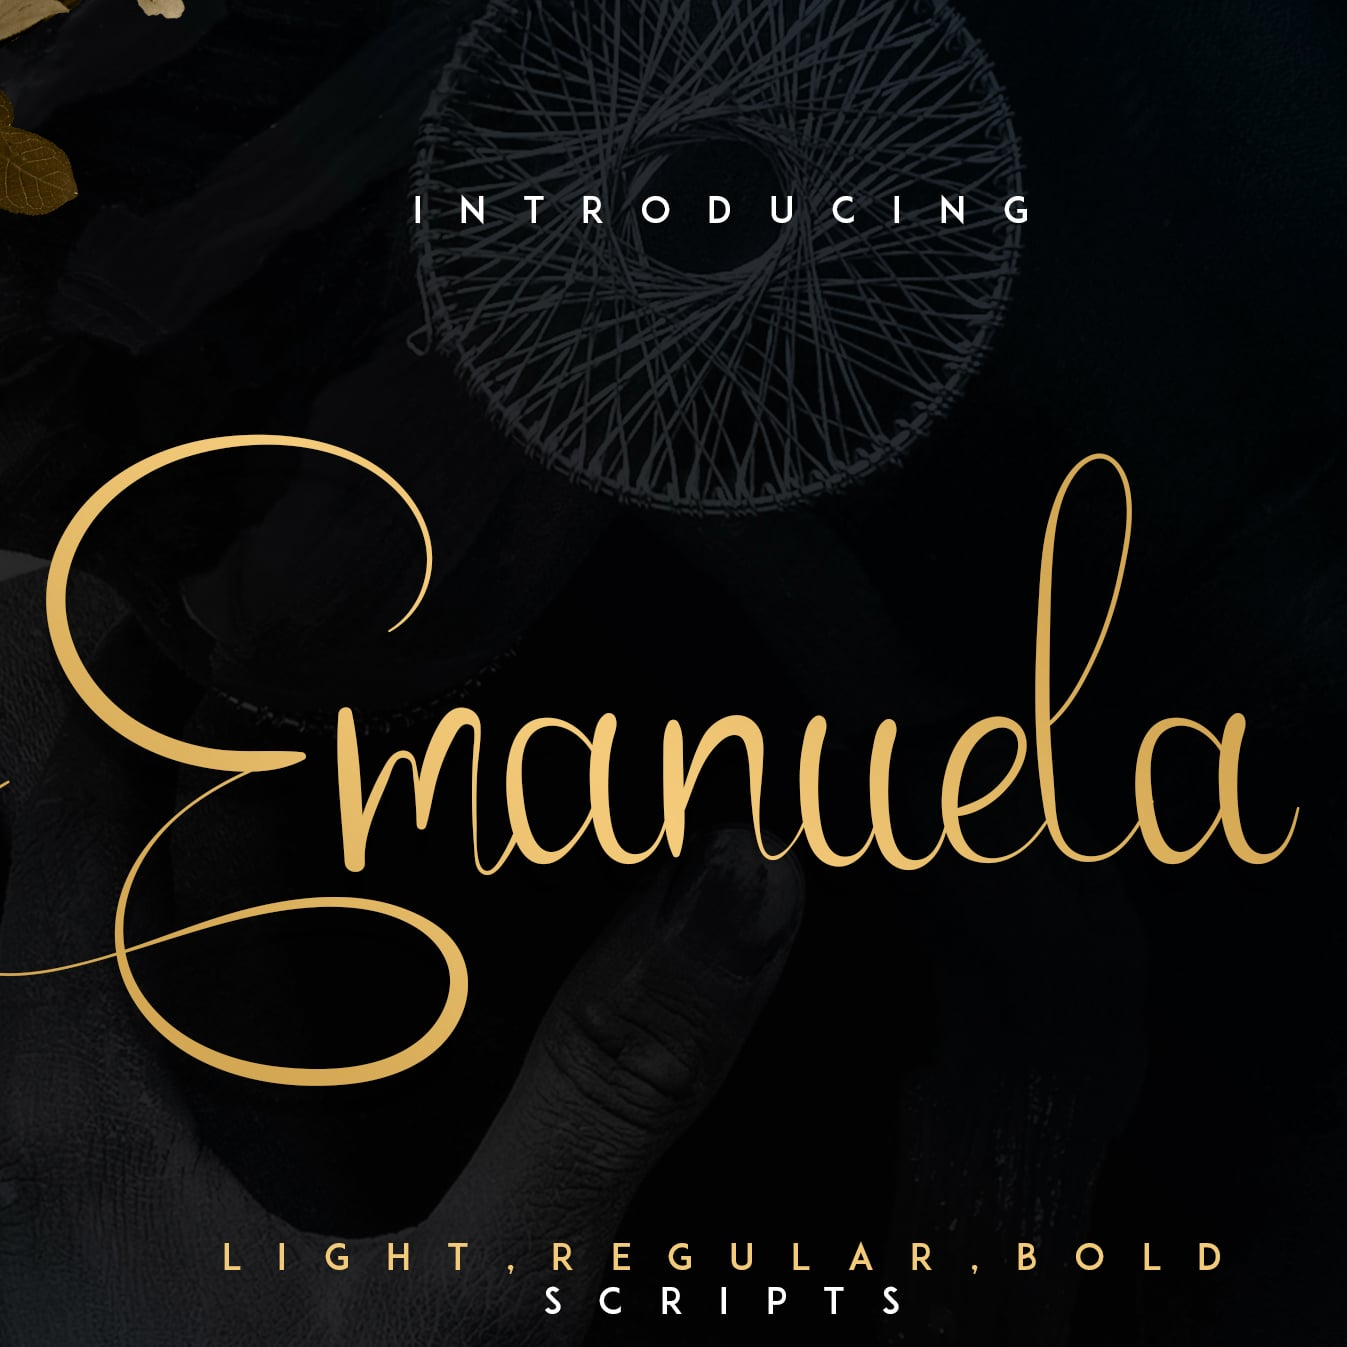 Emanuela Typeface and Designs main cover image.